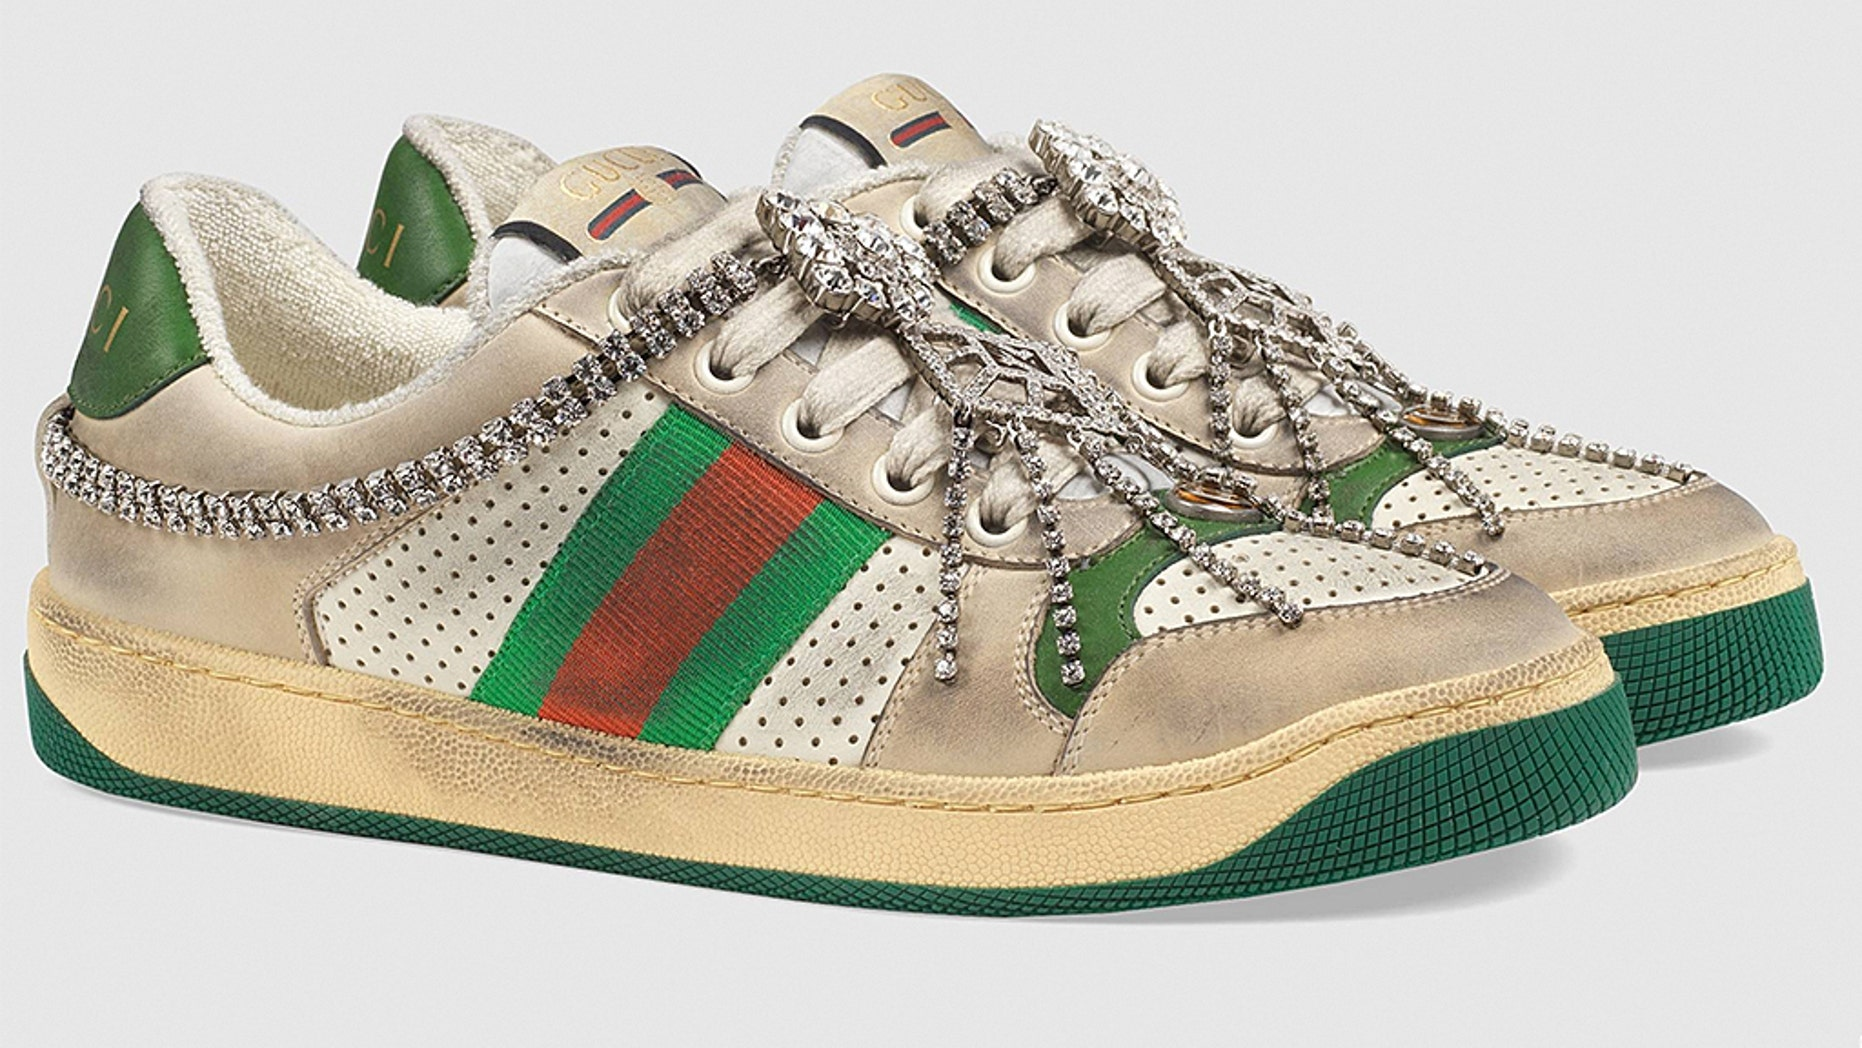 4533b3860 Gucci's $900 'dirty' sneakers slammed on Twitter | Fox News